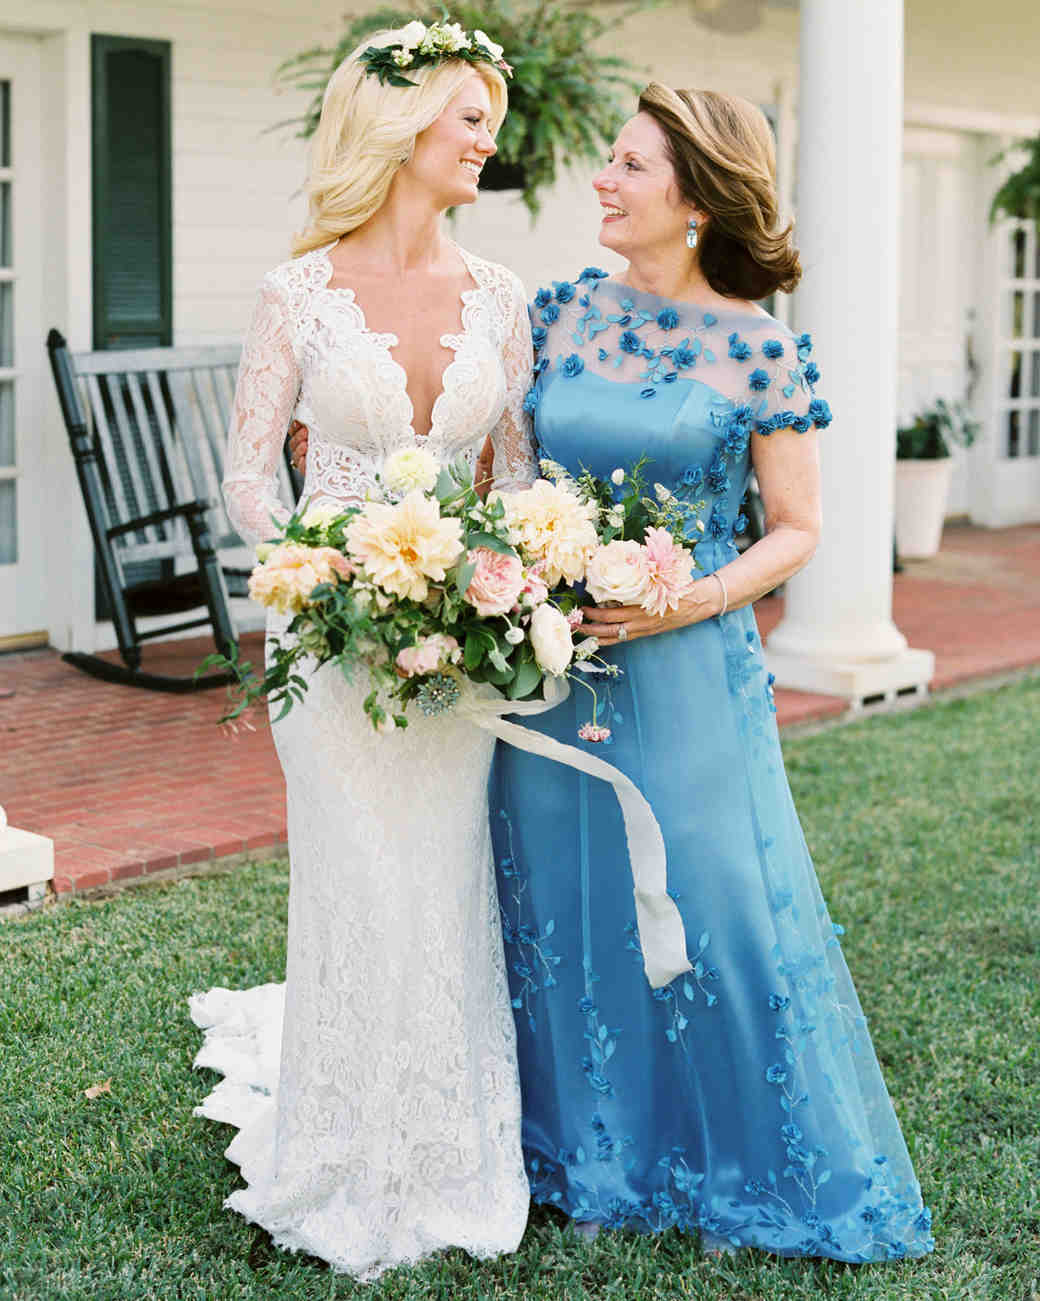 62211a0c5 Mother-of-the-Bride Dresses That Wowed at Weddings | Martha Stewart ...